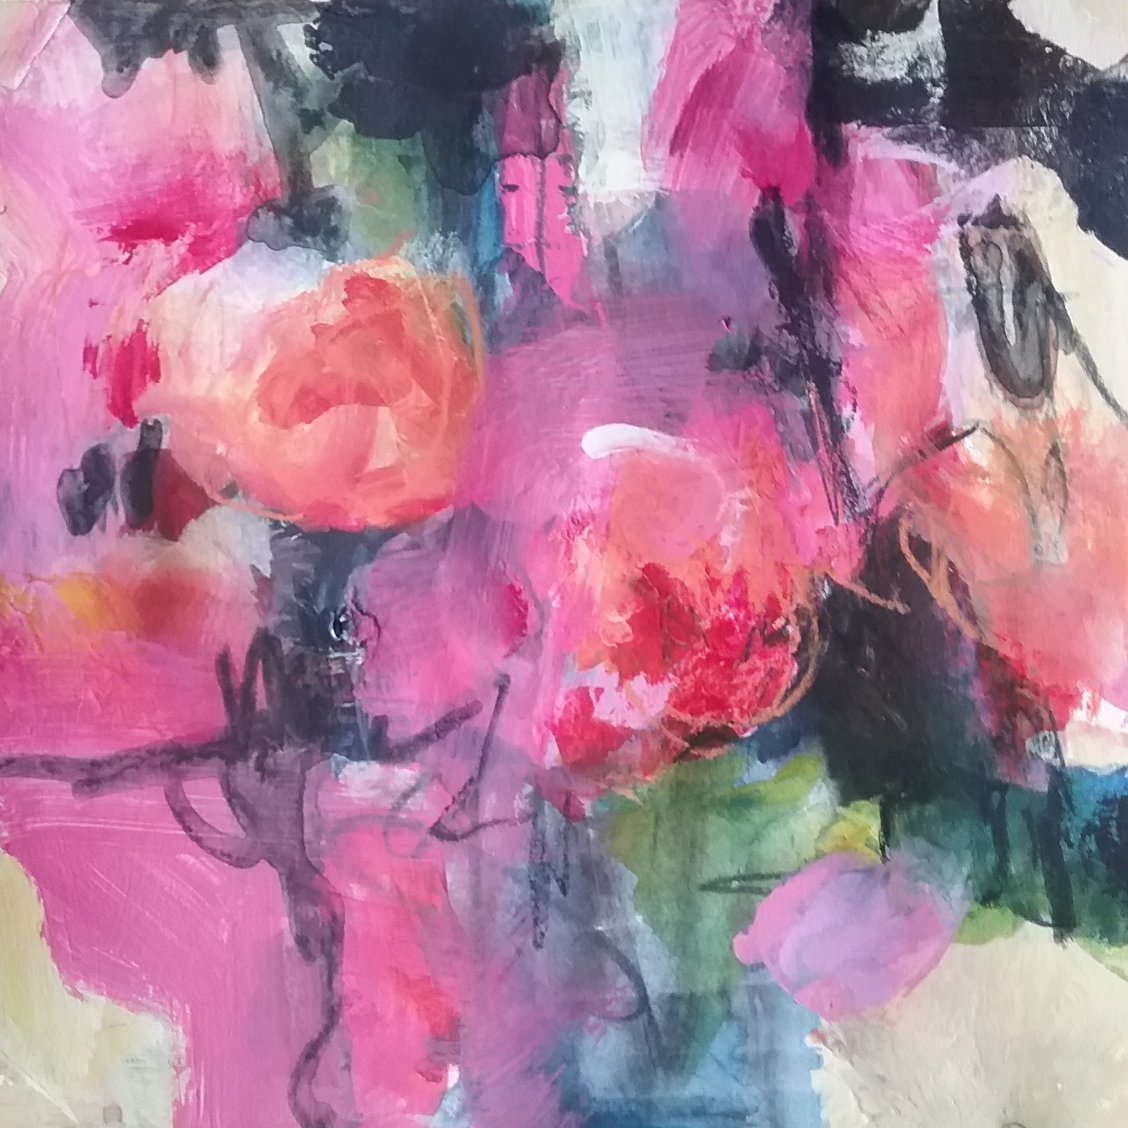 Floral abstract painting.